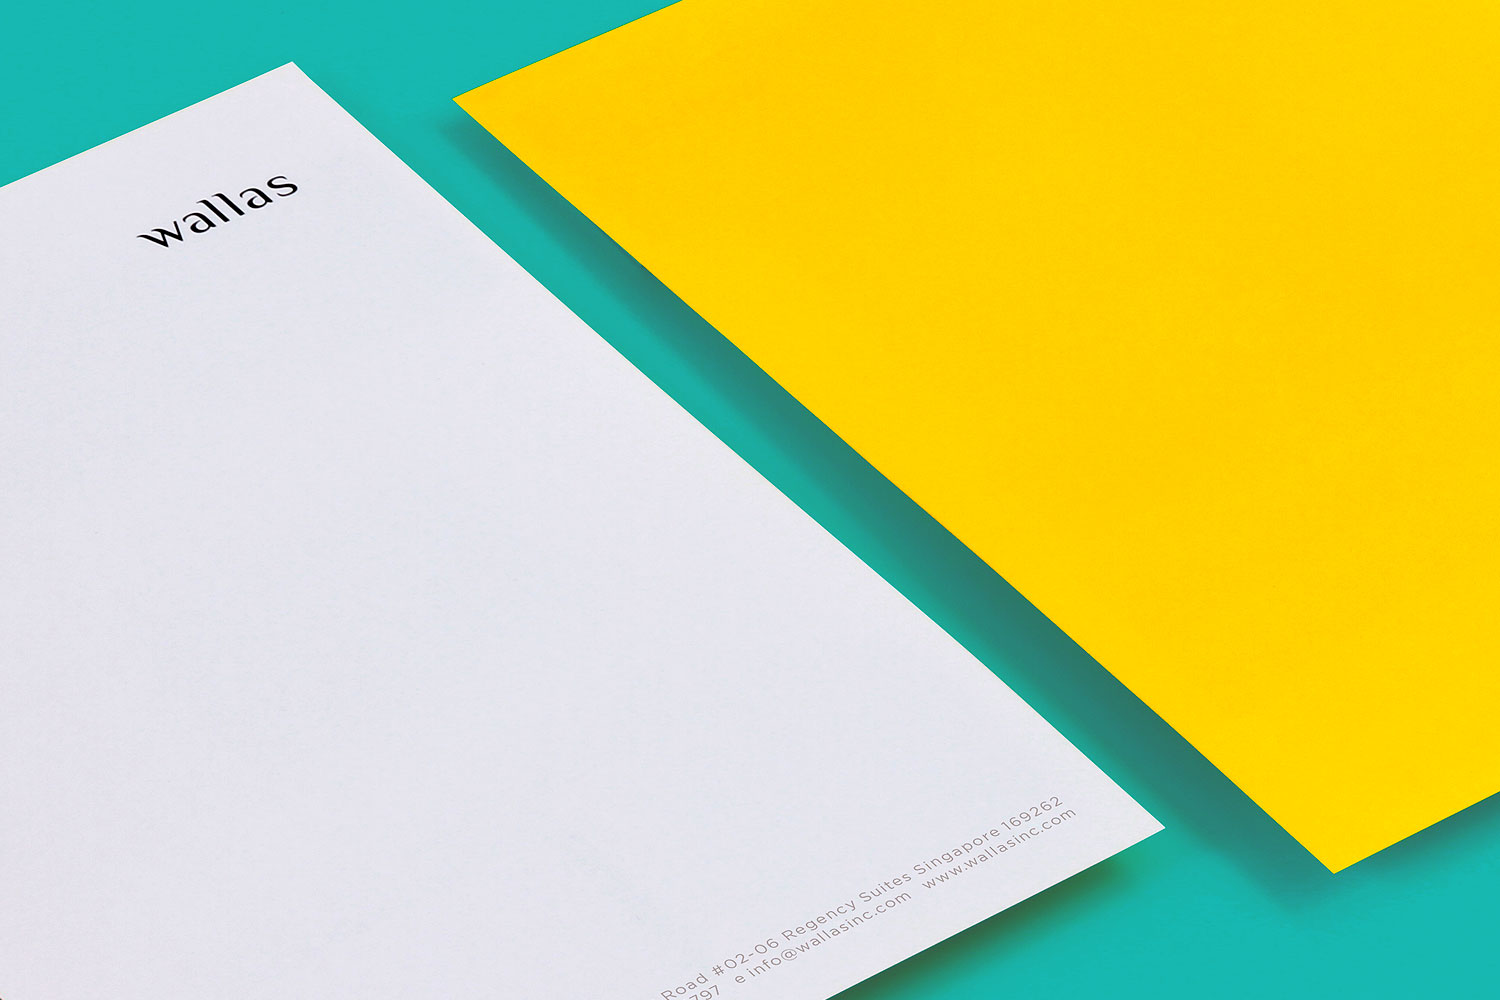 Branding identity design for Wallas Inc, an integrated agency in SG - Corporate identity letterheads design by Singapore based brand strategy and creative design consultancy, BÜRO UFHO.